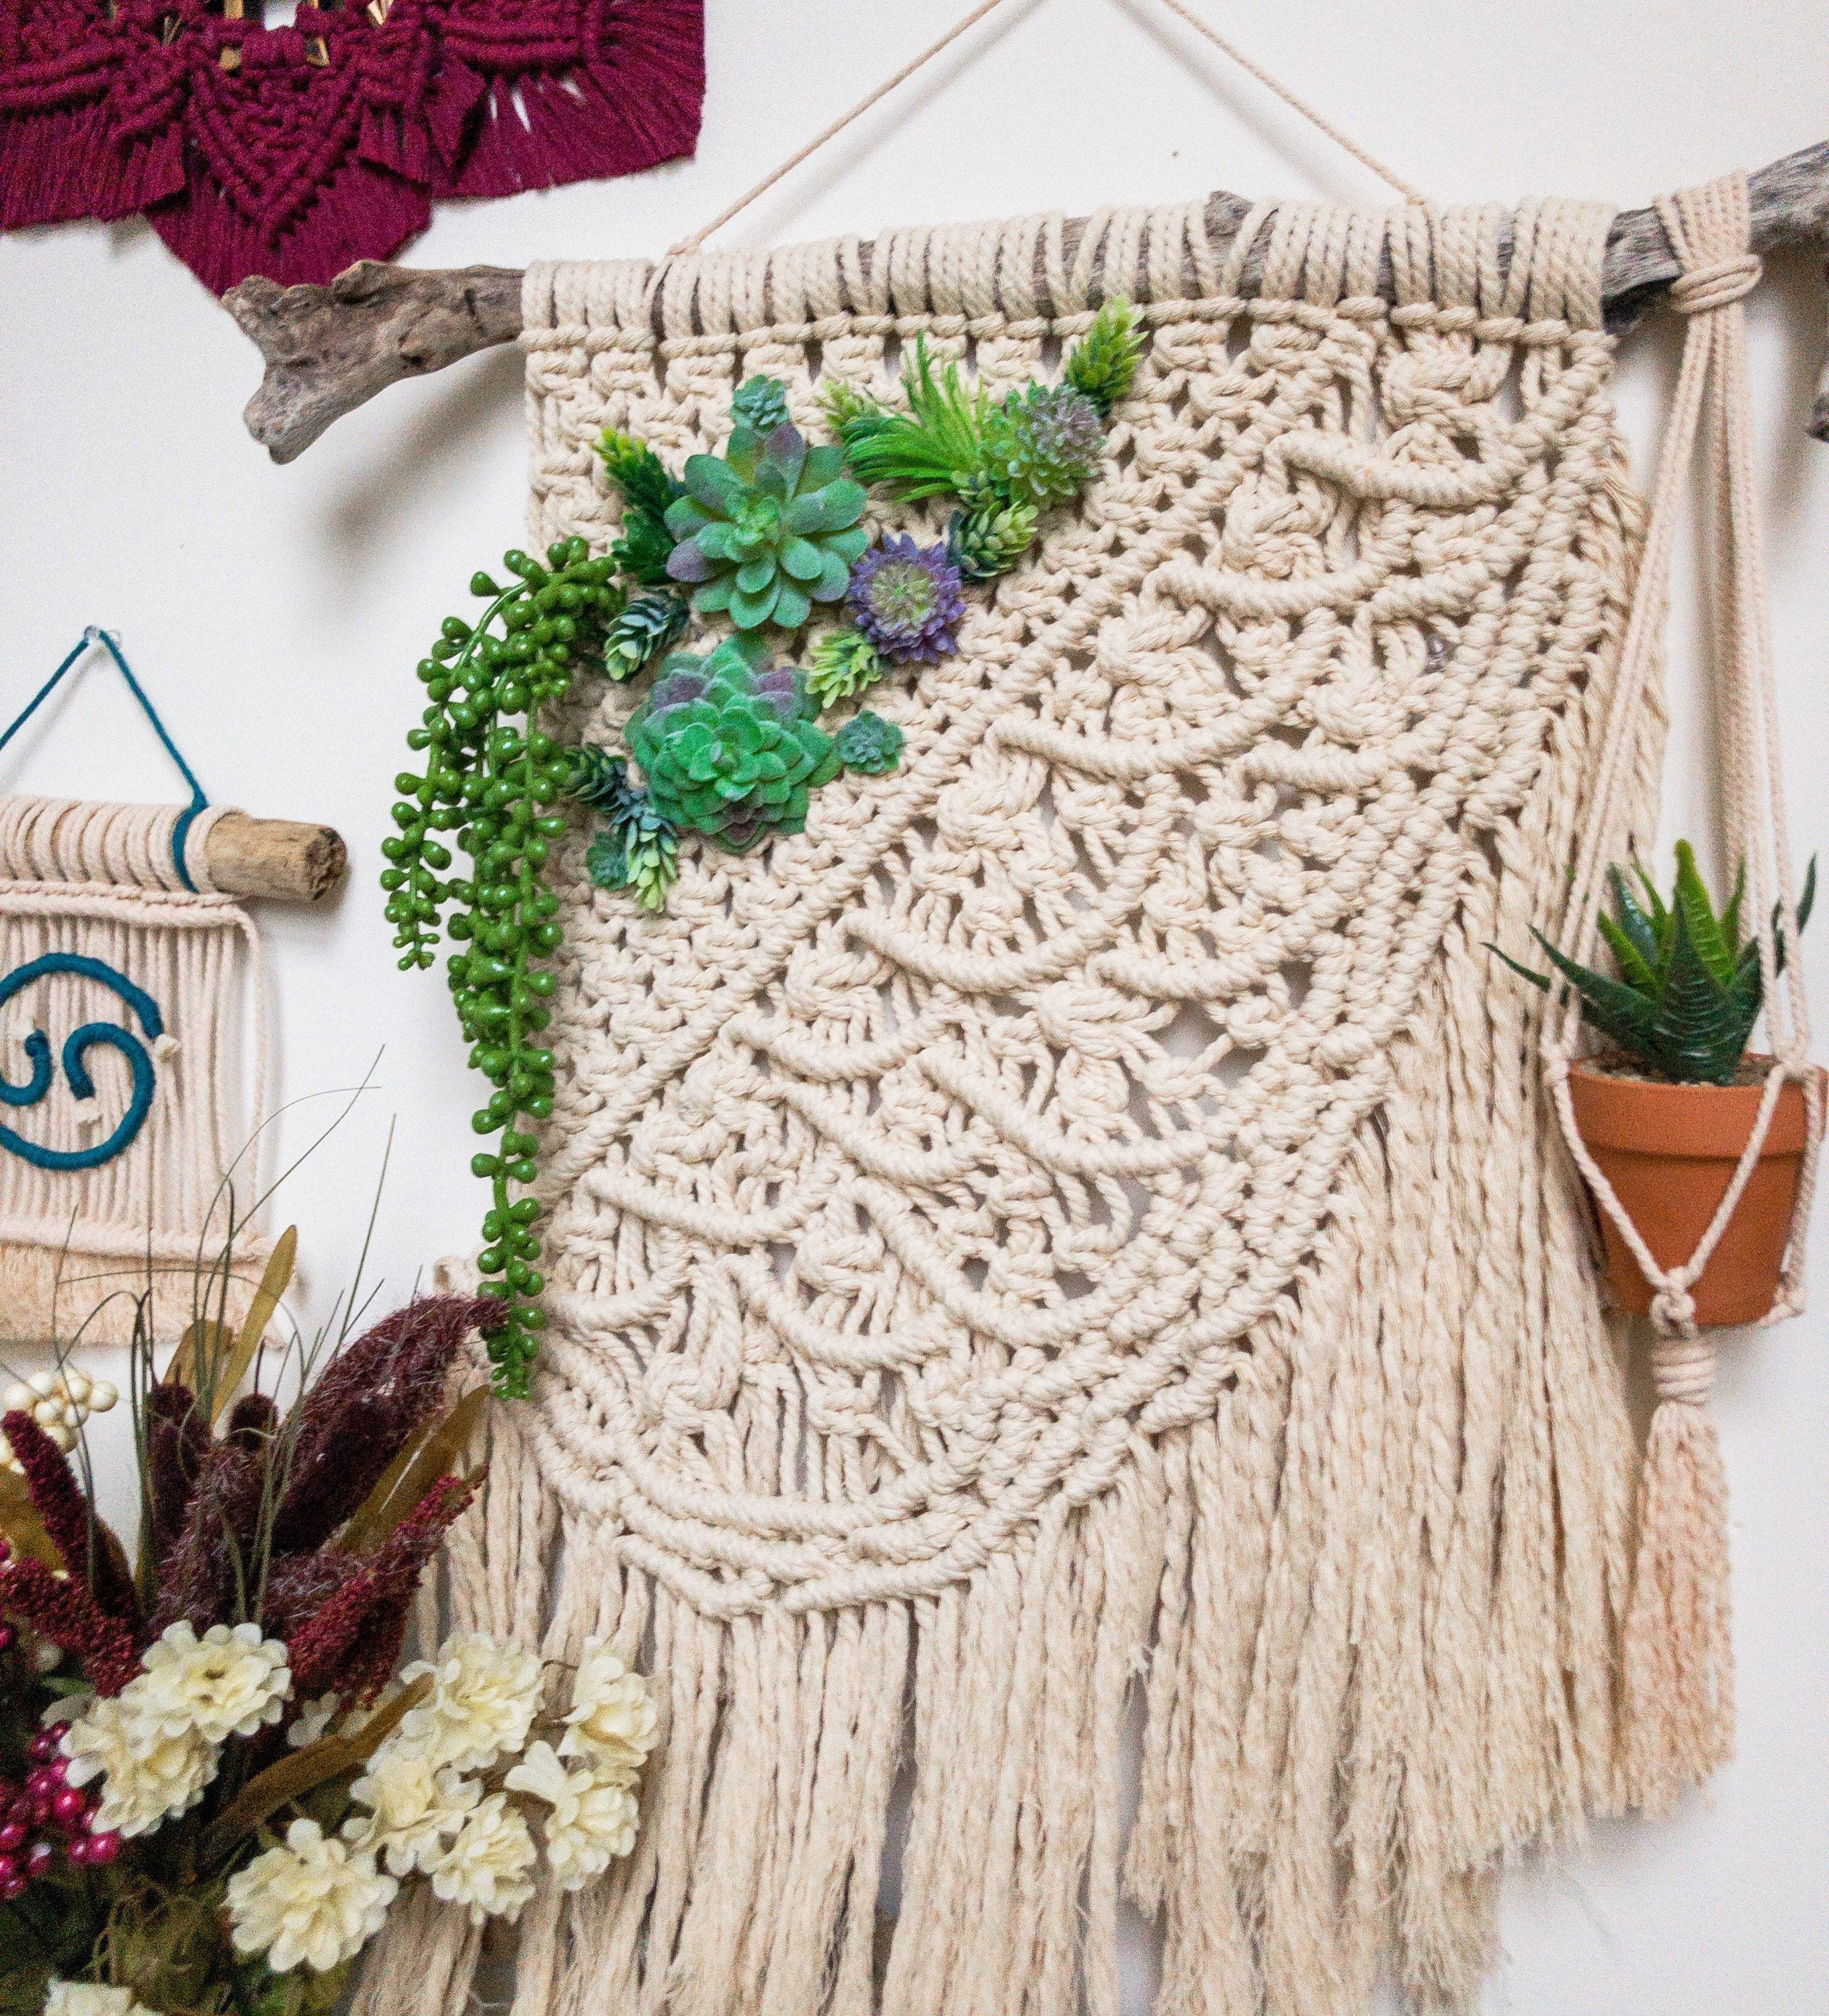 Succulent Macrame Wall Hanging Cactus Wall Hanging Macrame Wall Art Rope Wall Hanging Succulent Wall Decor Faux Succulent Wall Decor